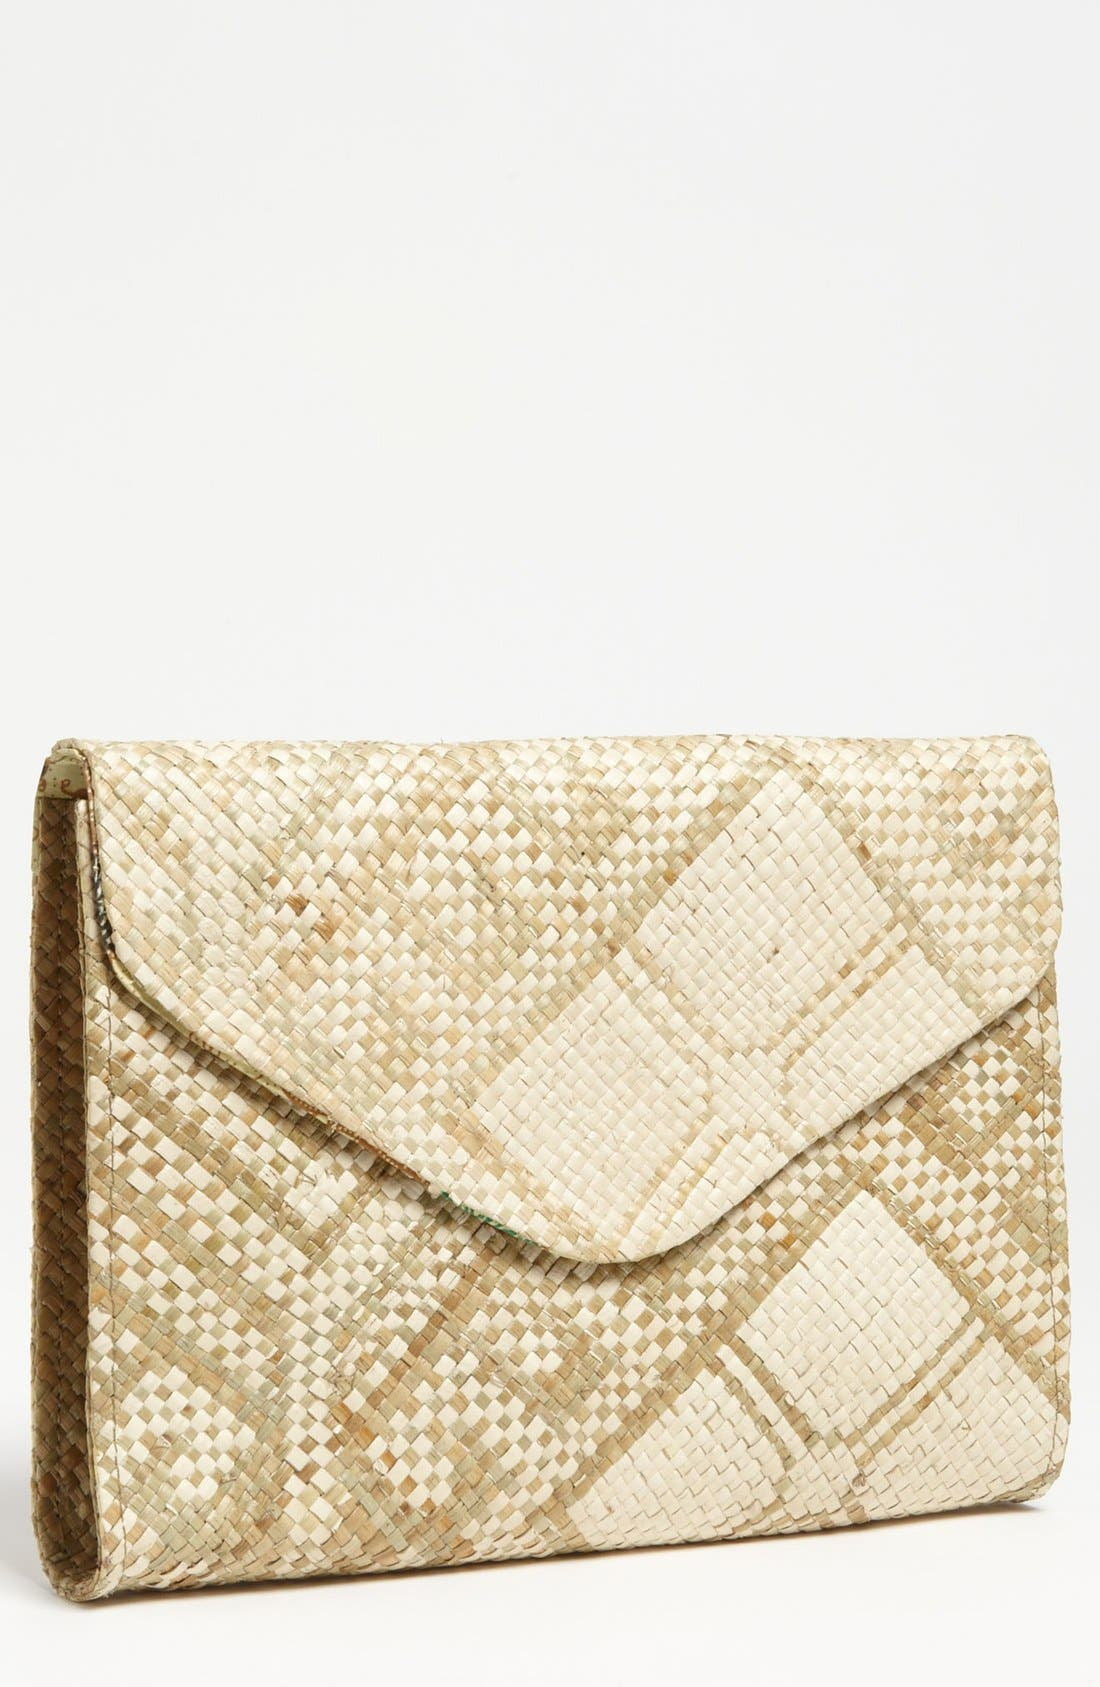 Main Image - BANAGO 'Manila - Small' Clutch